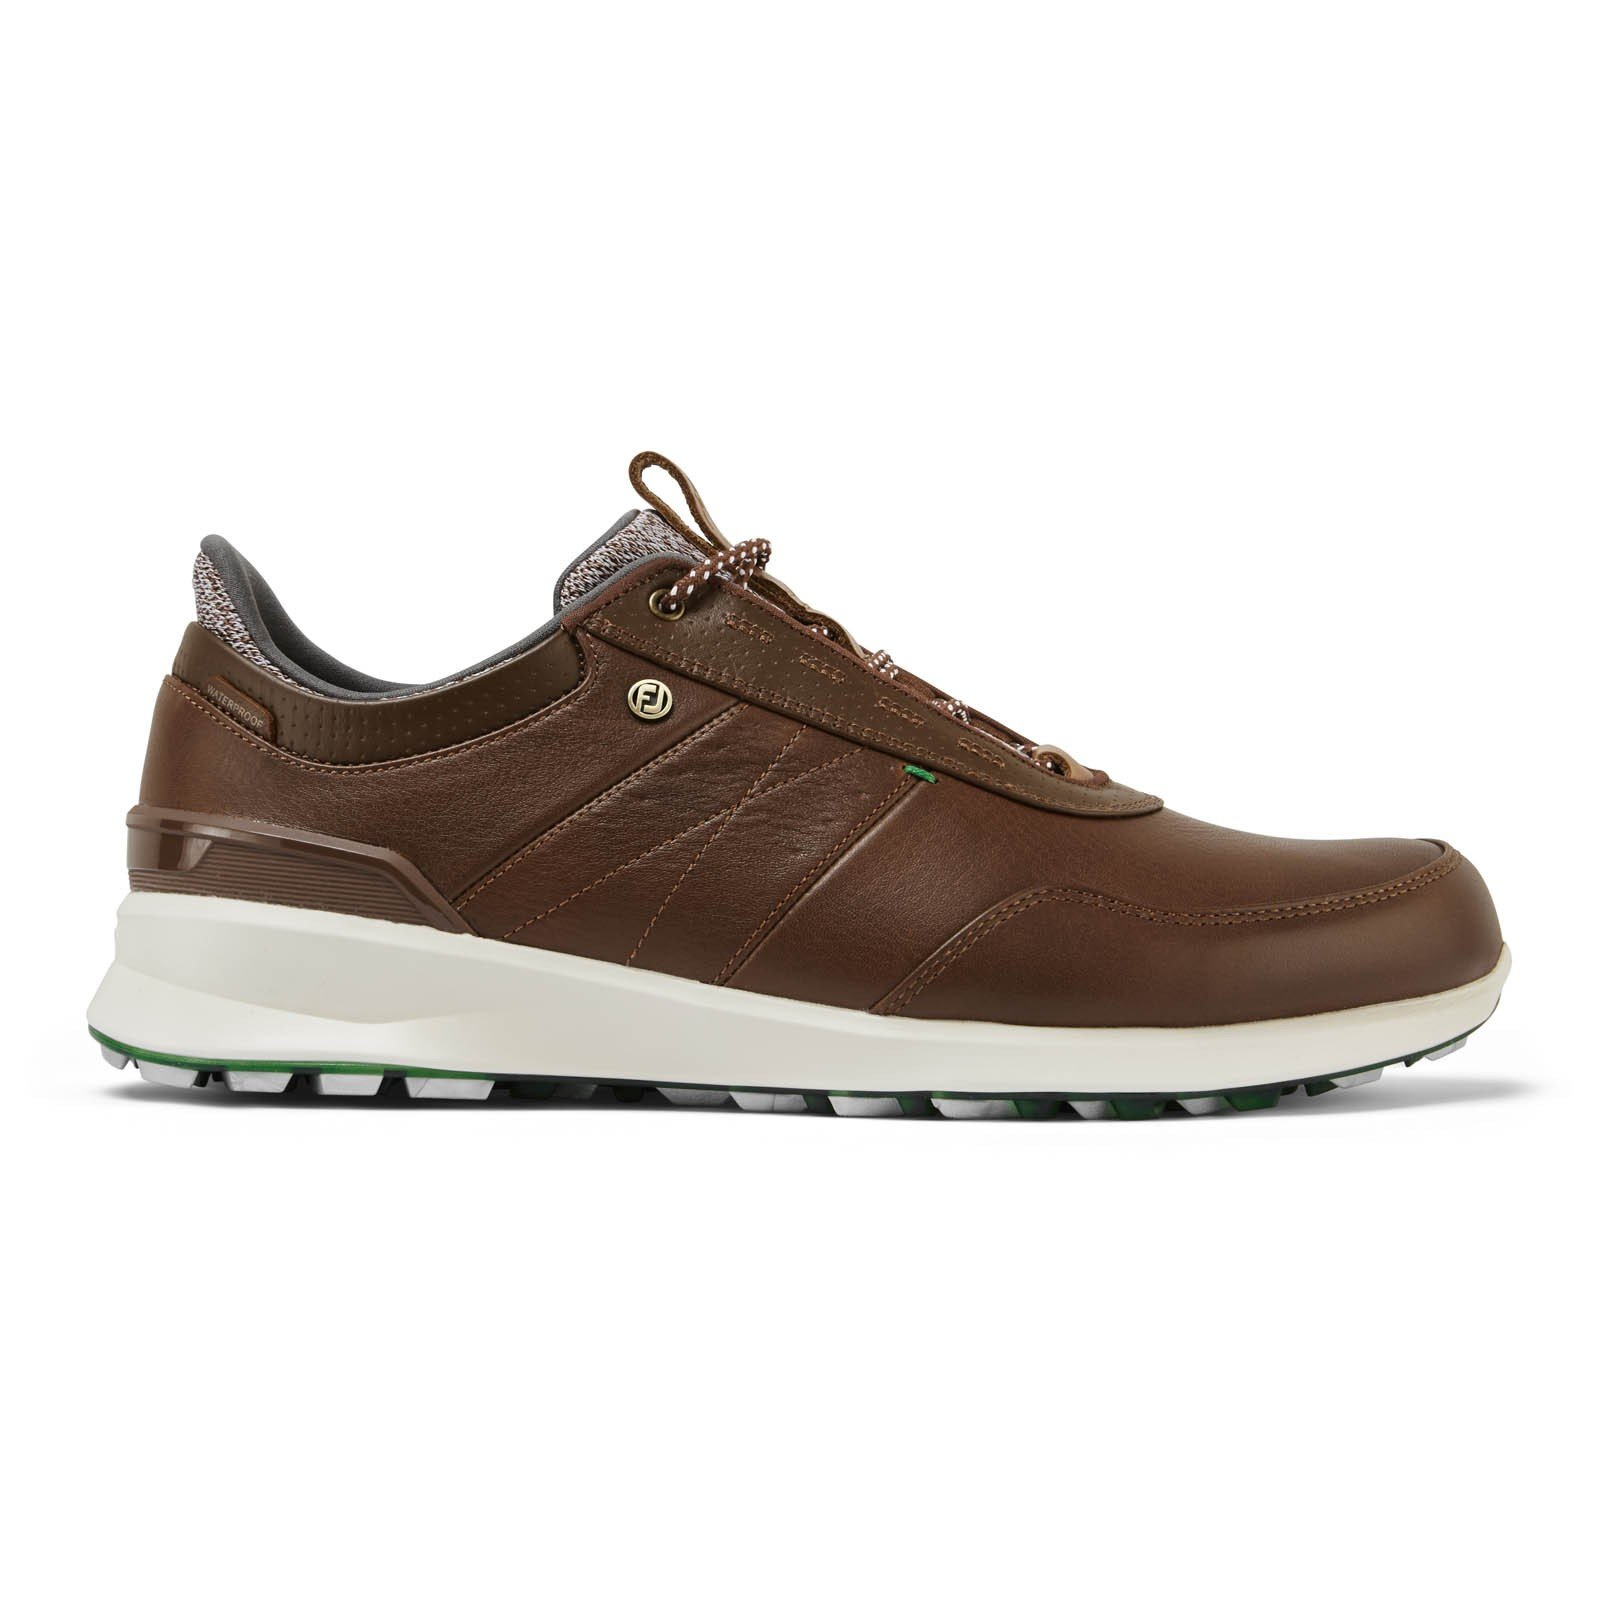 Footjoy Stratos Spikeless Golf Shoes